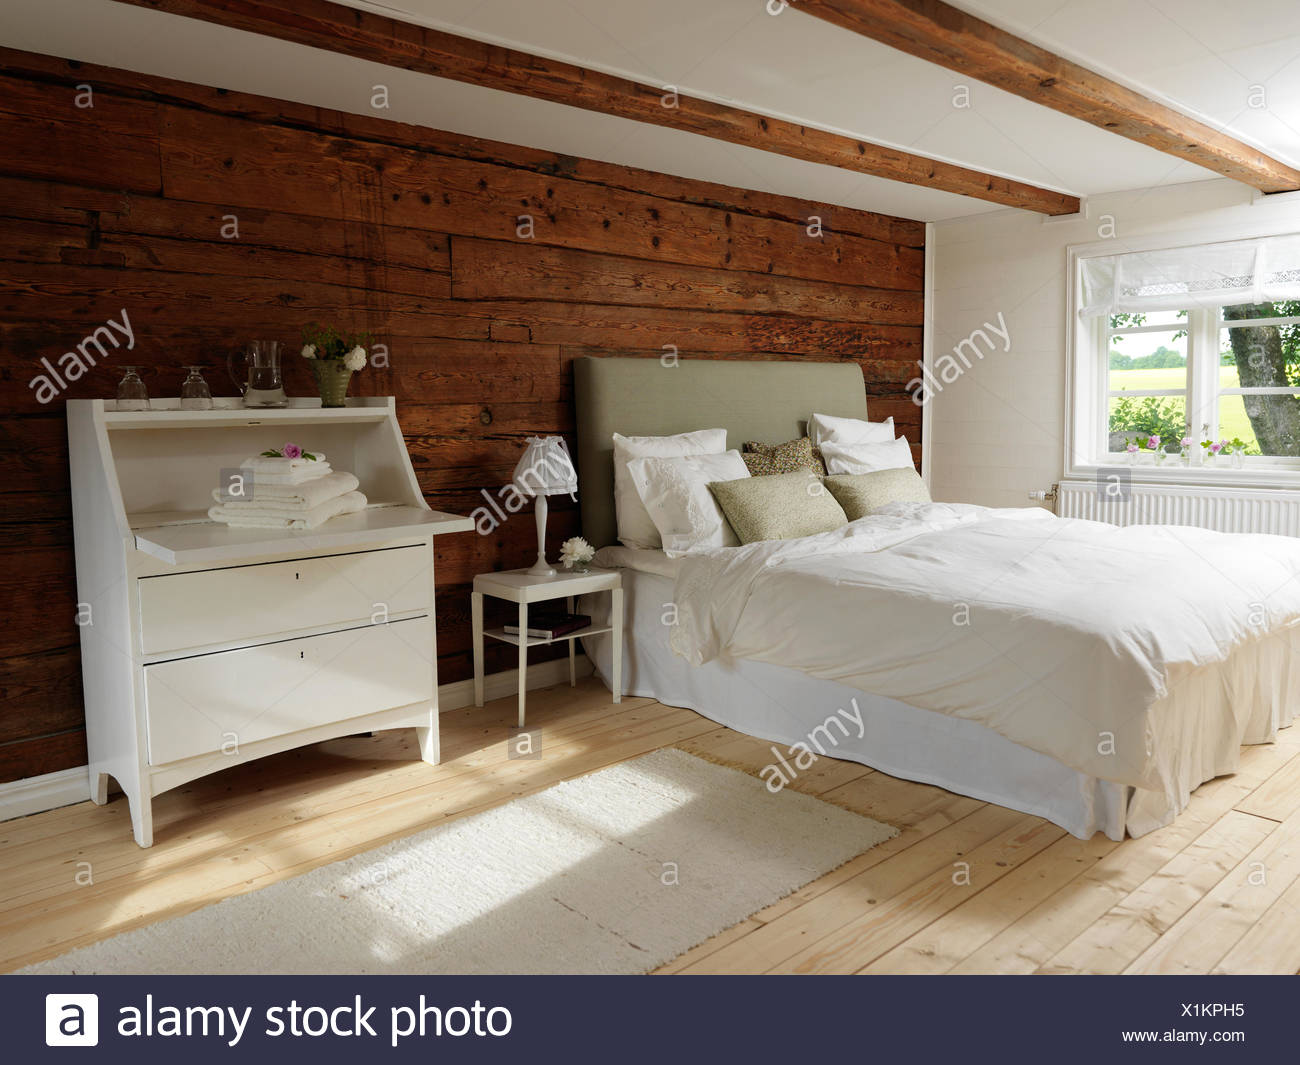 Sweden, Scandinavian style bedroom with wood and white color theme - Stock Image